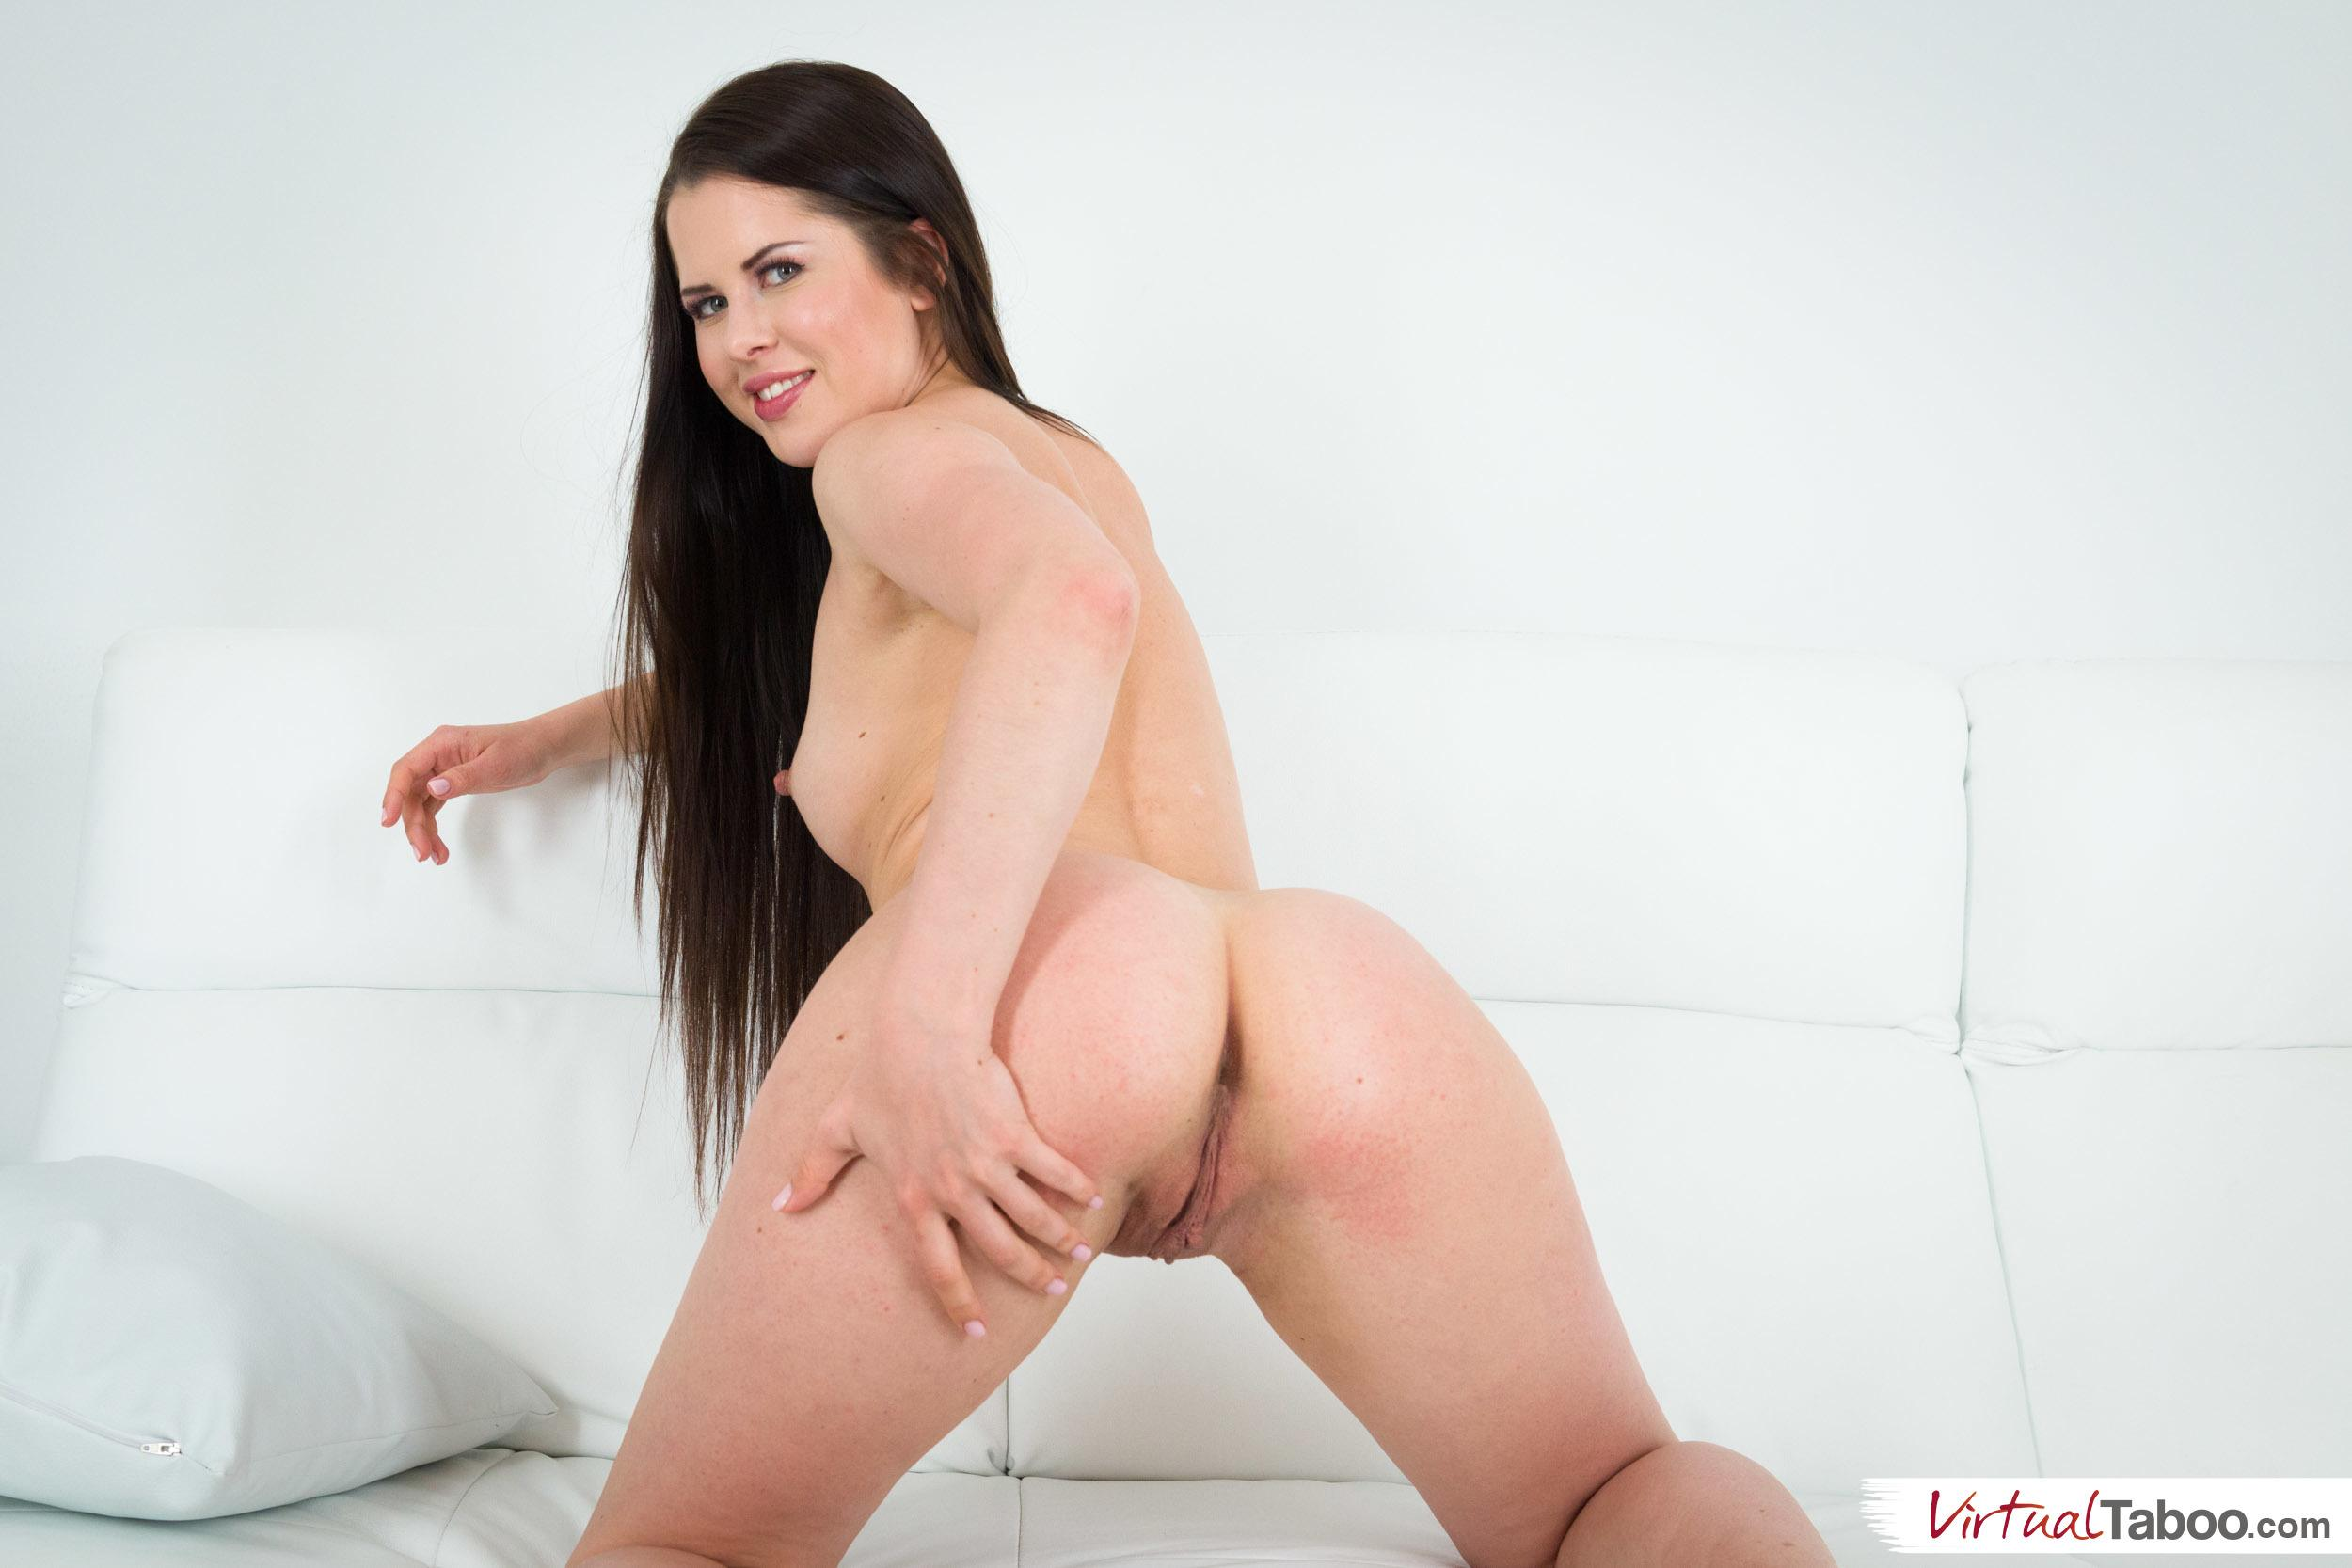 Cassie fire stretching like a real gymnast 10